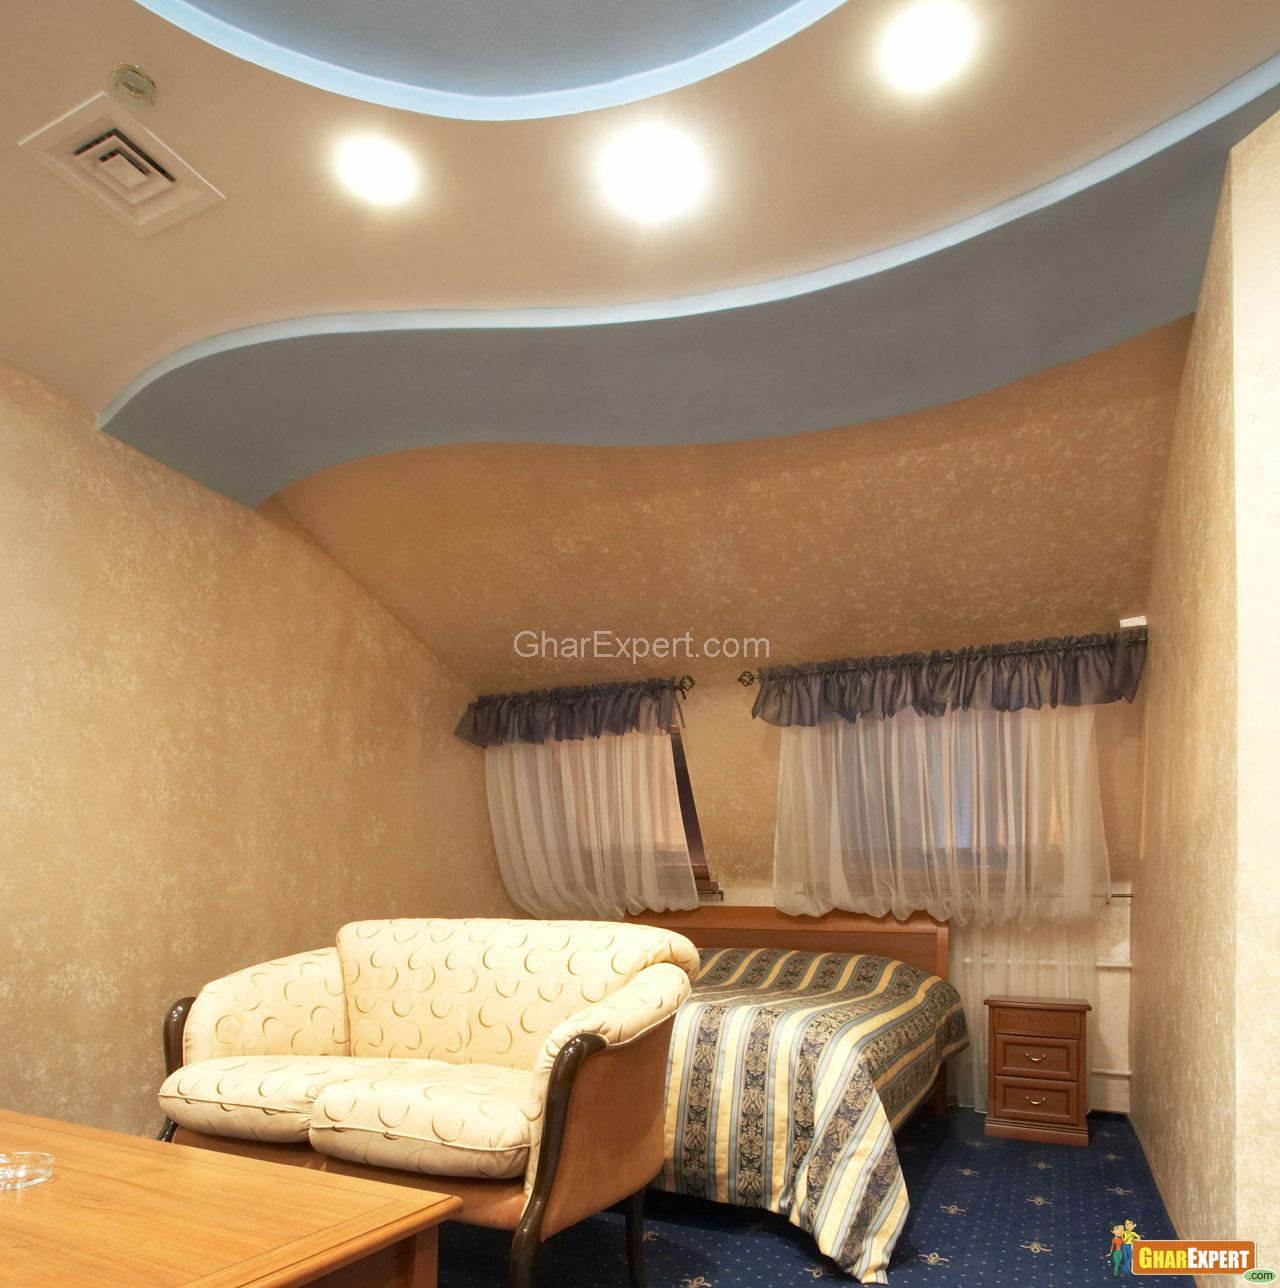 Bed Sofa Ceiling Design In